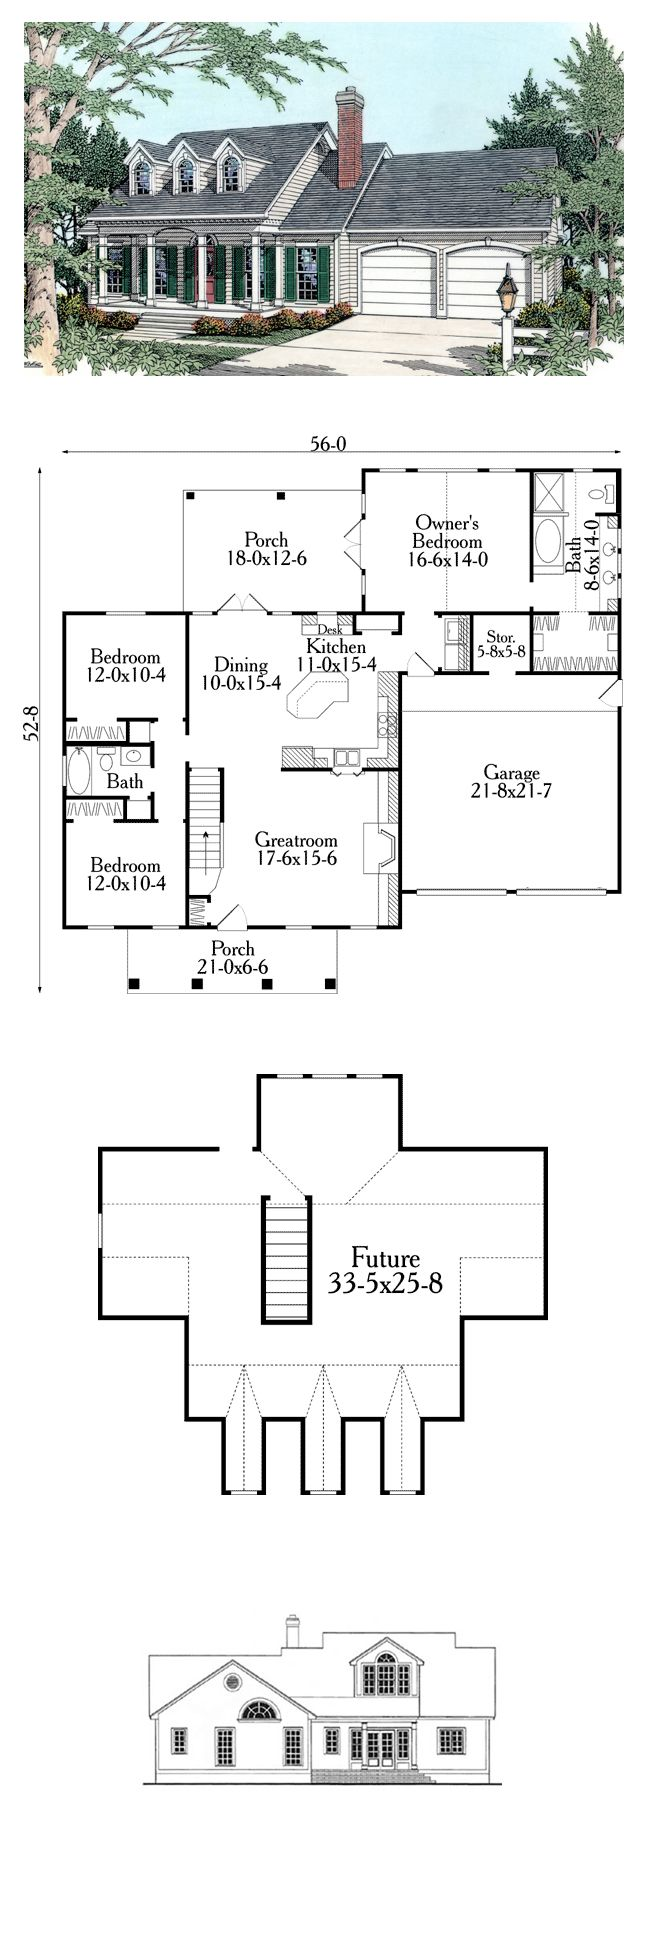 Cape cod country house plan 40029 house plans cape cod for Country home designs floor plans